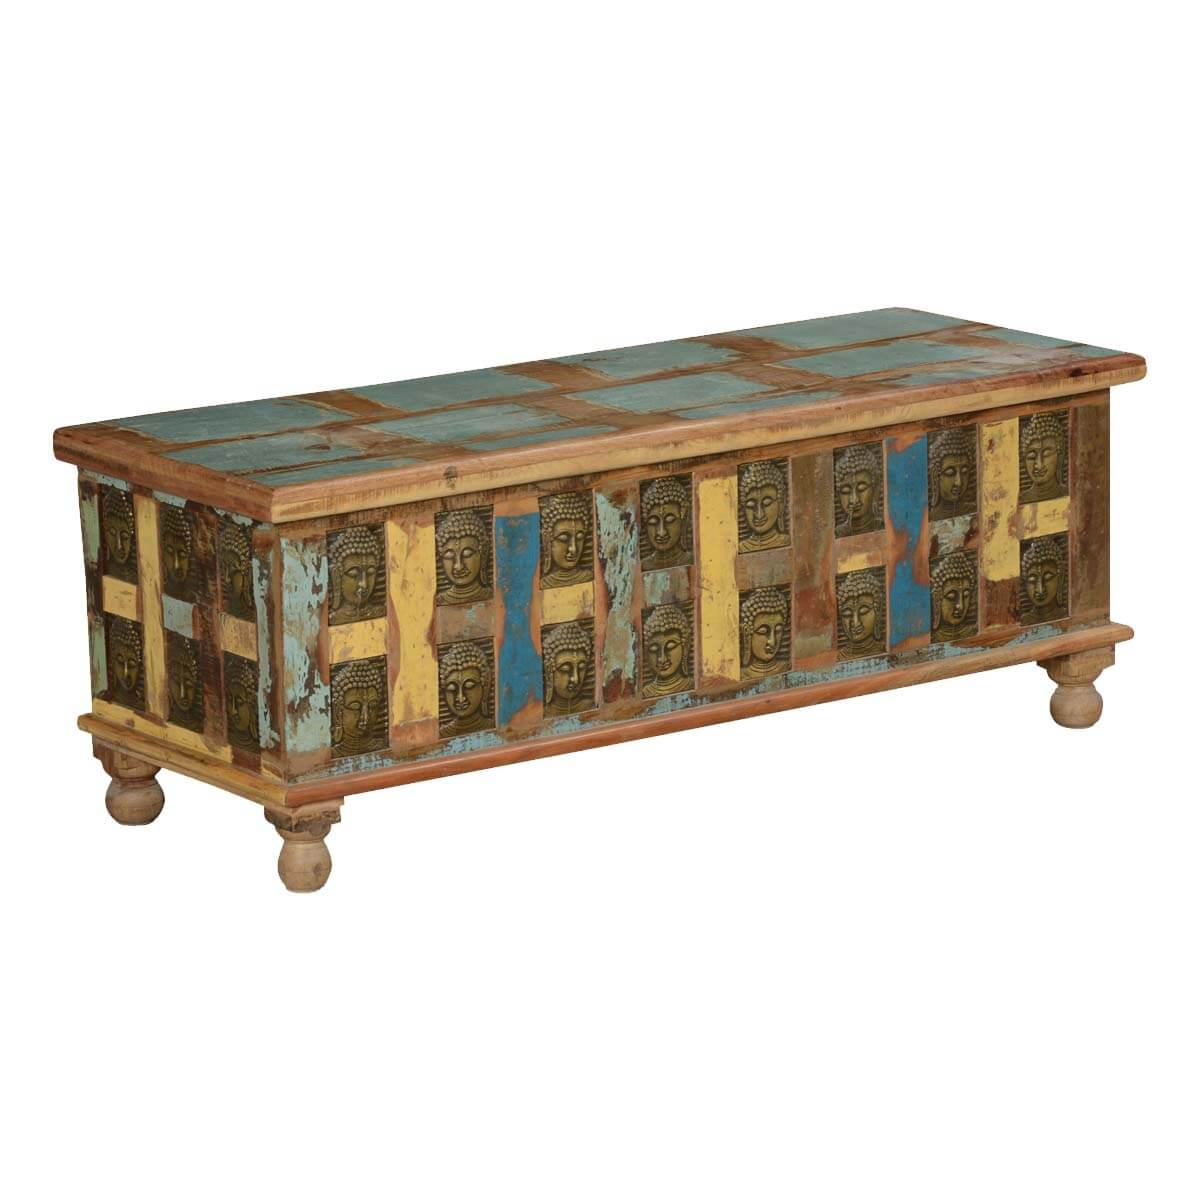 Rustic Reclaimed Wood Coffee Table Storage Trunk W Embossed Buddha